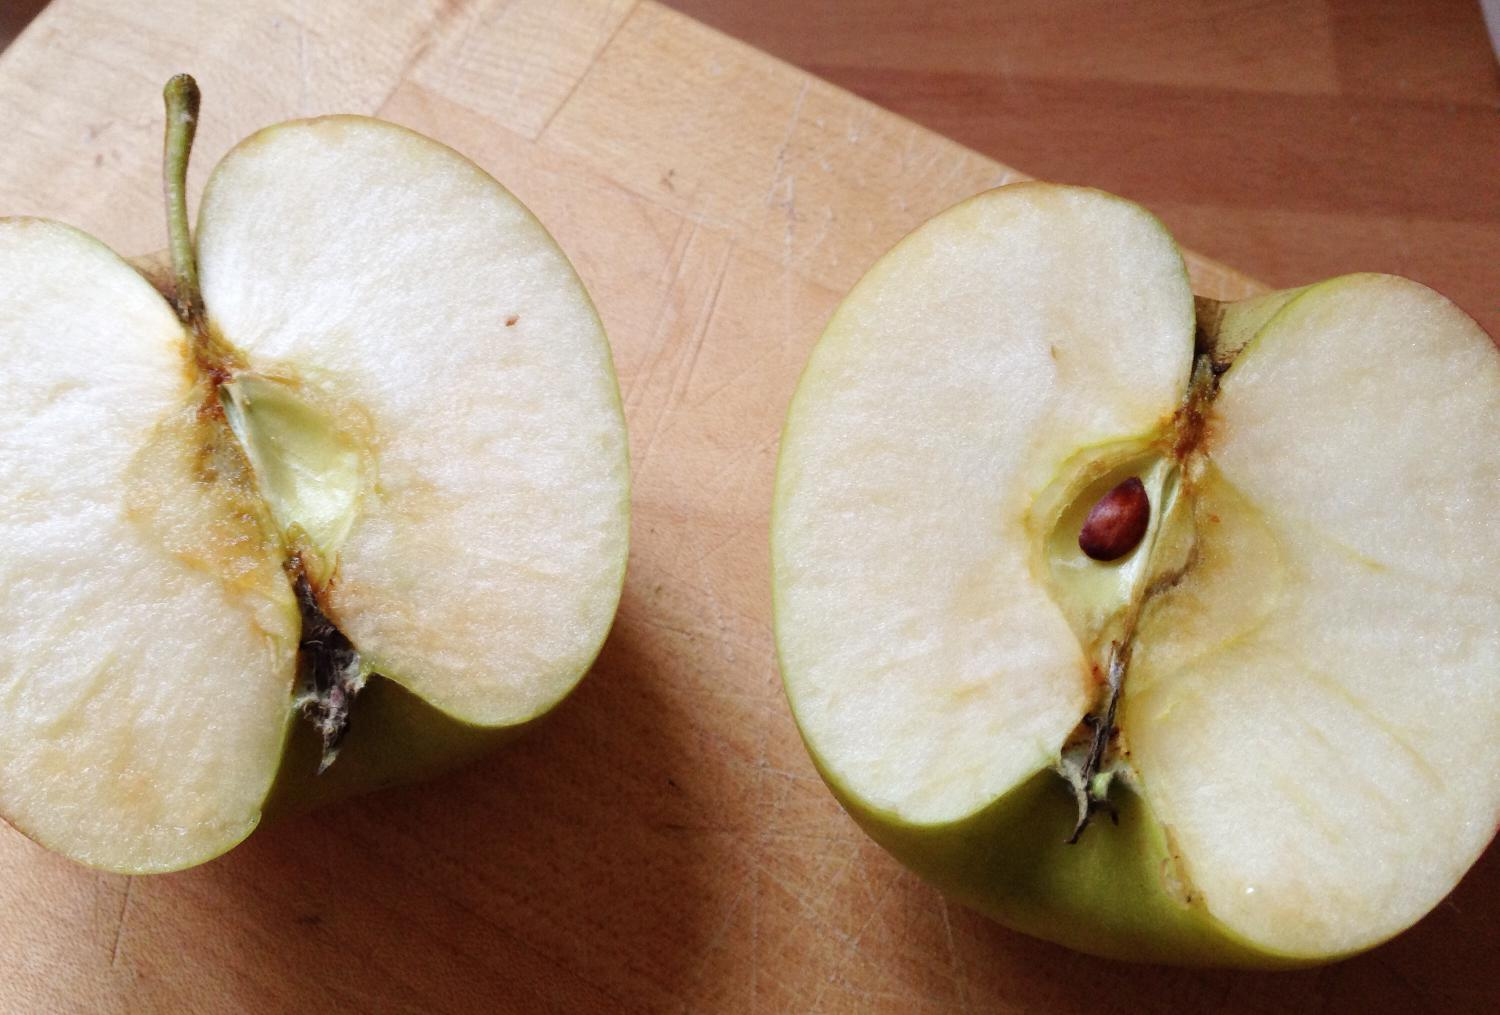 Why Do Apples Turn Brown An Explanation For Kids